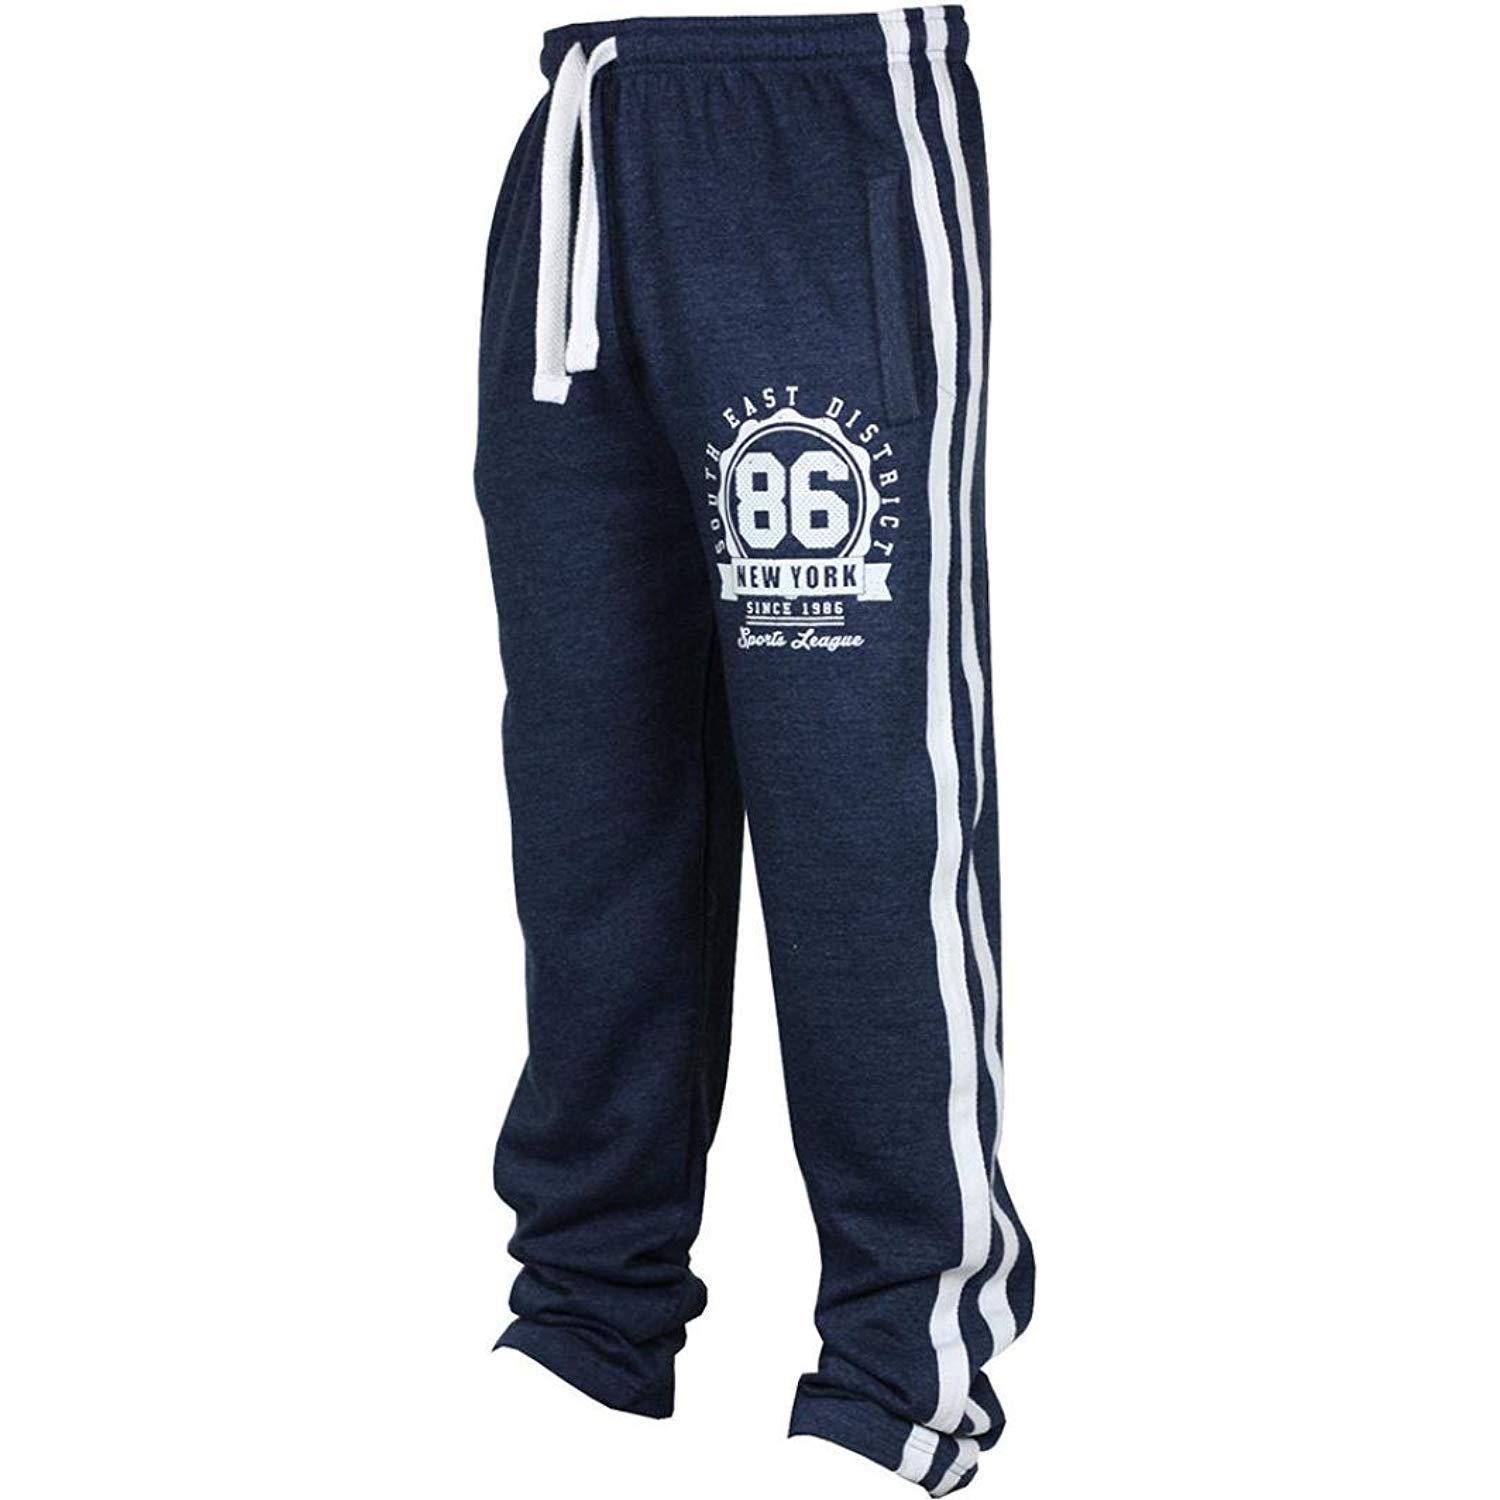 M/&S/&W Mens Casual Jogging Harem Pants Running Trousers Jogger Pants